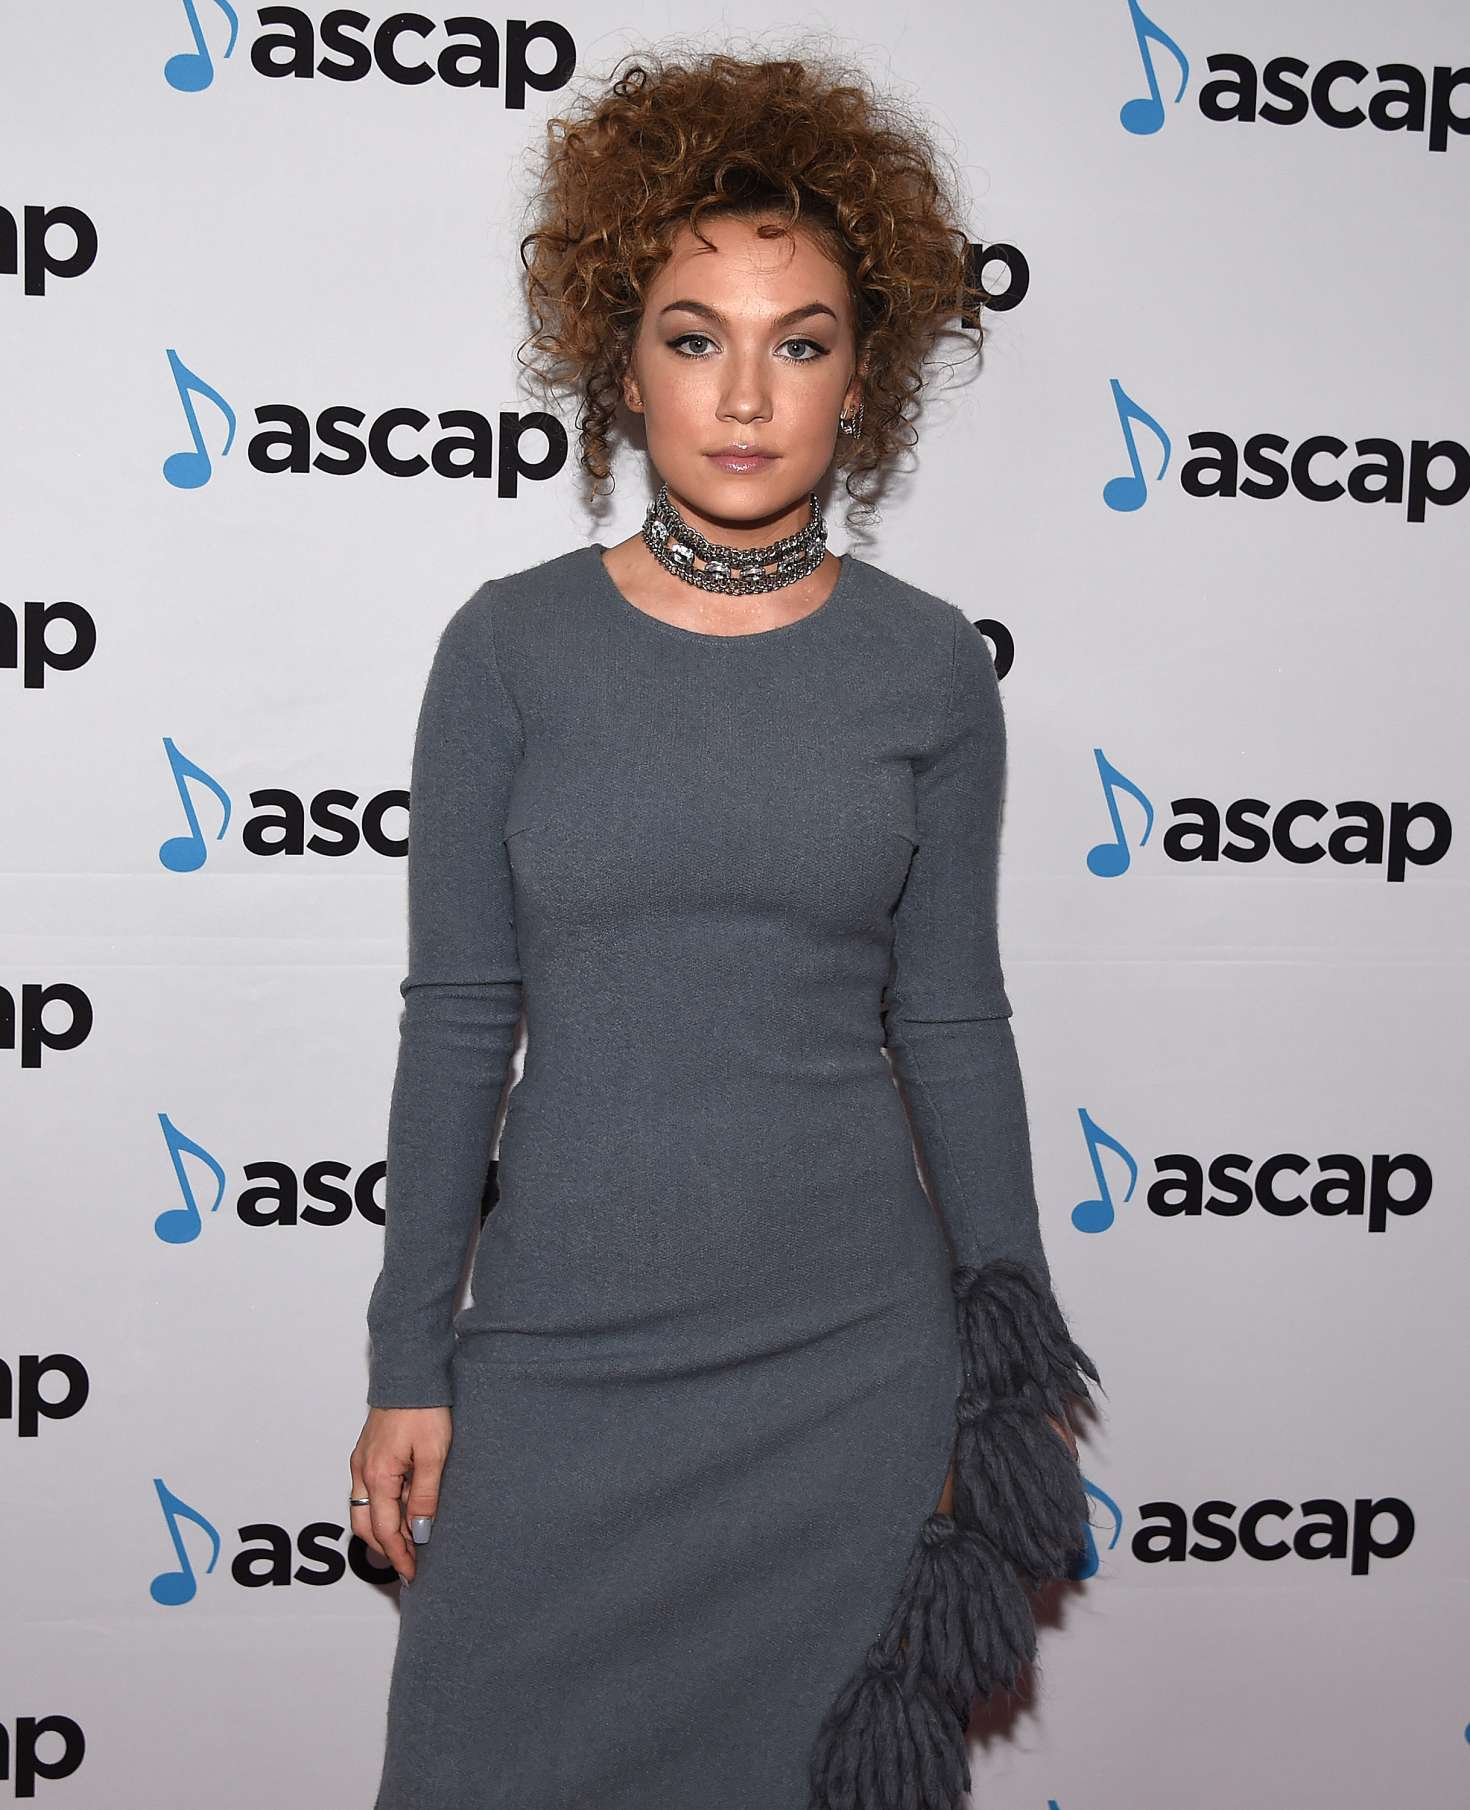 Jude Demorest - 34th Annual ASCAP Pop Music Awards in Los Angeles